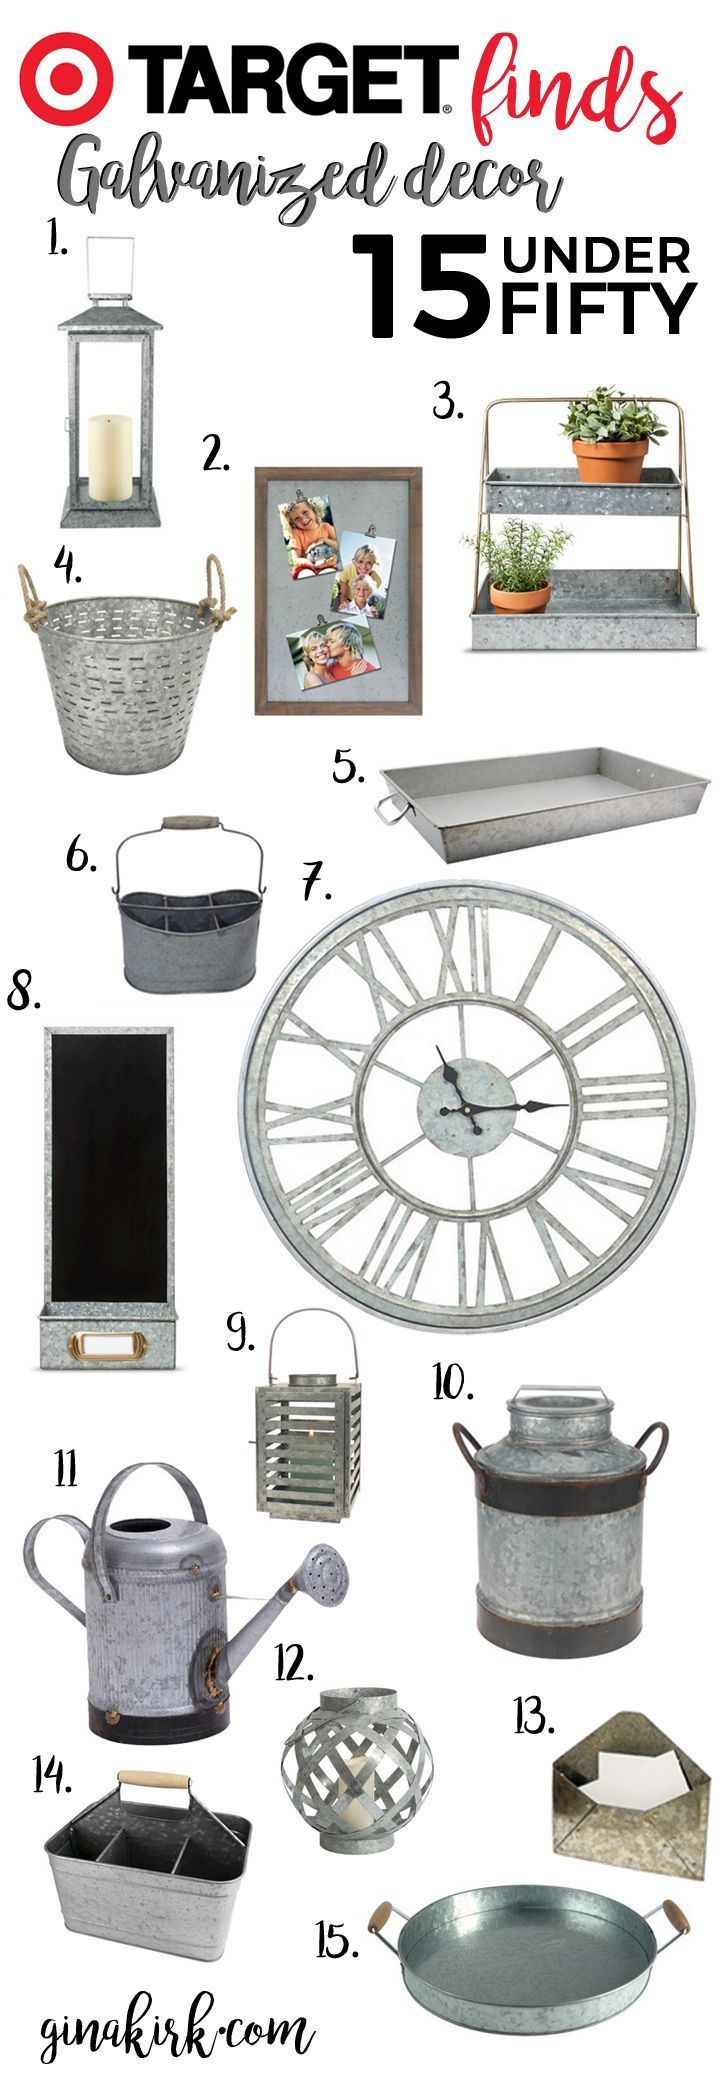 Fixer upper inspired galvanized home decor | Target finds under $50 | Farmhouse design and style inspiration | Fixer upper for less: kitchen, family room, bathroom and more! http://GinaKirk.com